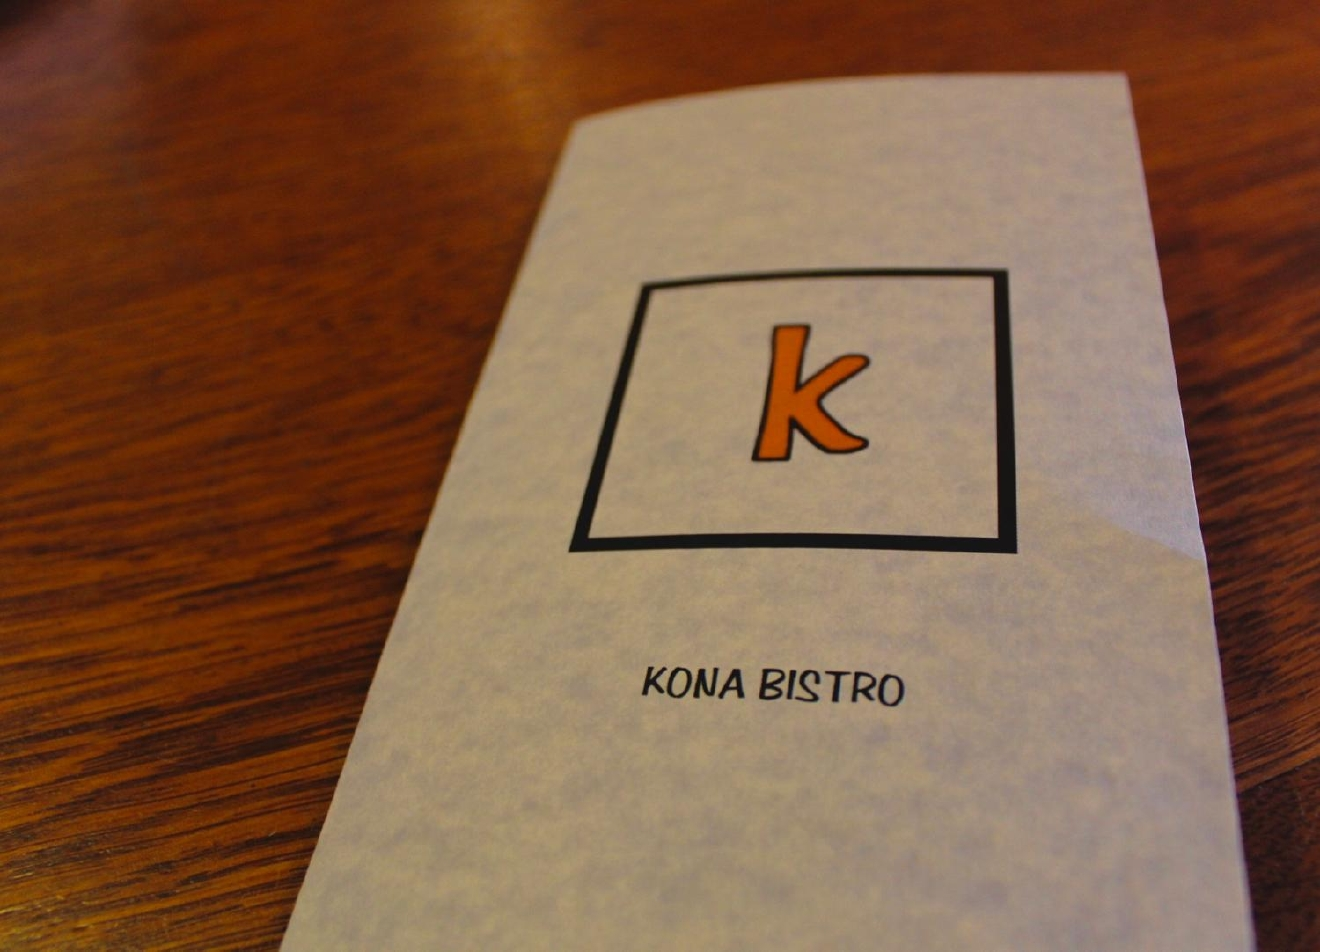 Kona Bistro, an independently owned & operated restaurant, has been providing high-quality food and drinks to the folks in Oxford, OH since 1997. ADDRESS: 31 W. High St., Oxford, OH 45056 / Image: Rose Brewington // Published: 3.12.17